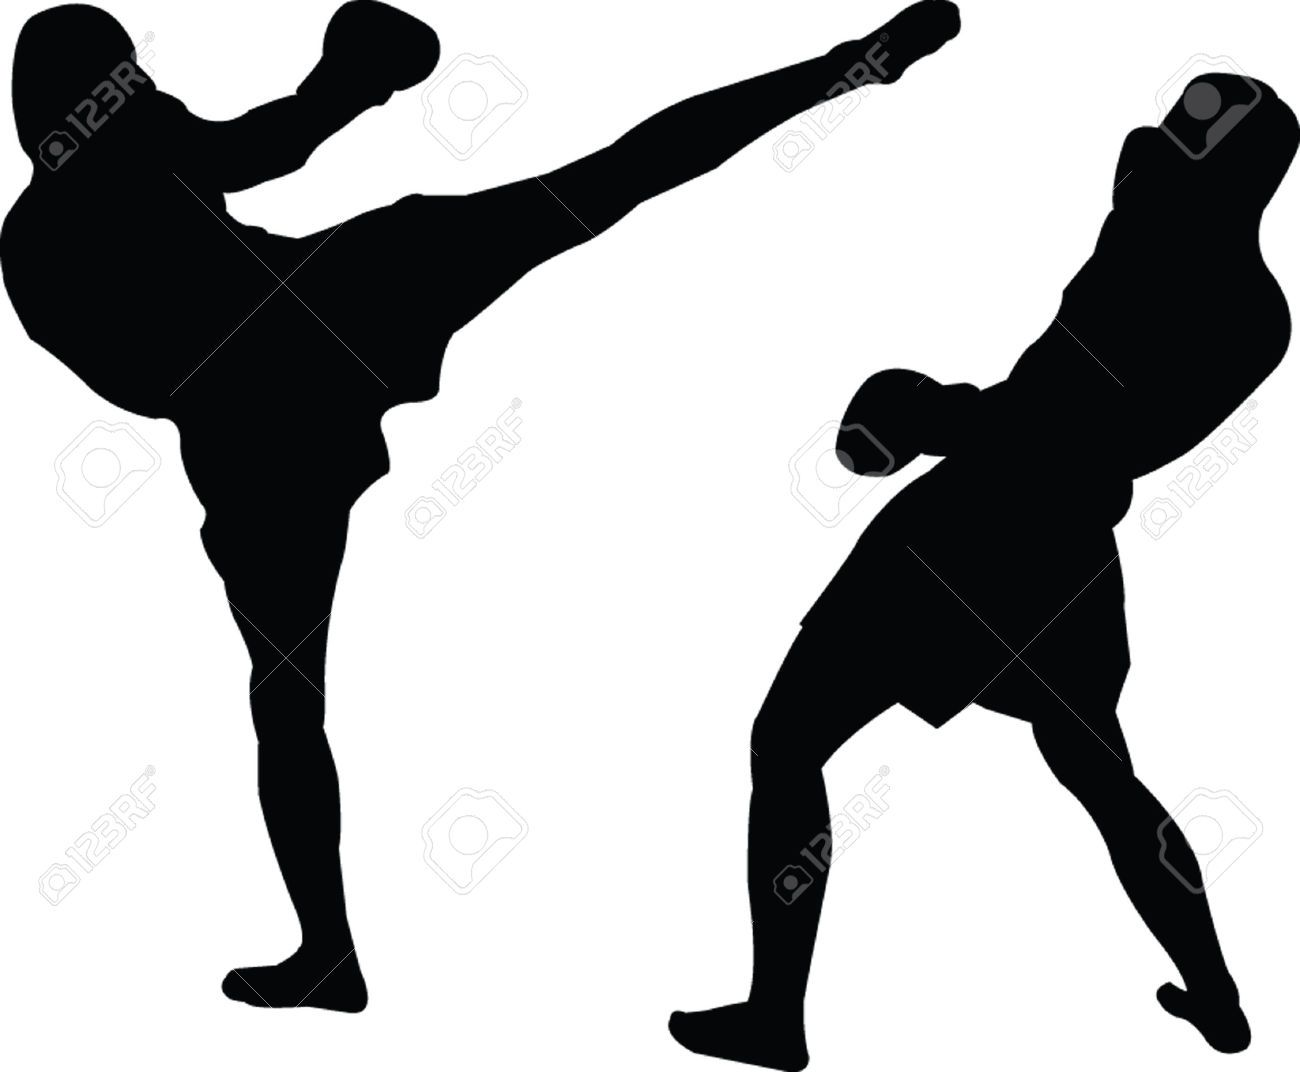 Kickboxer clipart png royalty free download Stock Vector in 2019 | Kickboxing | Silhouette, Silhouette vector ... png royalty free download